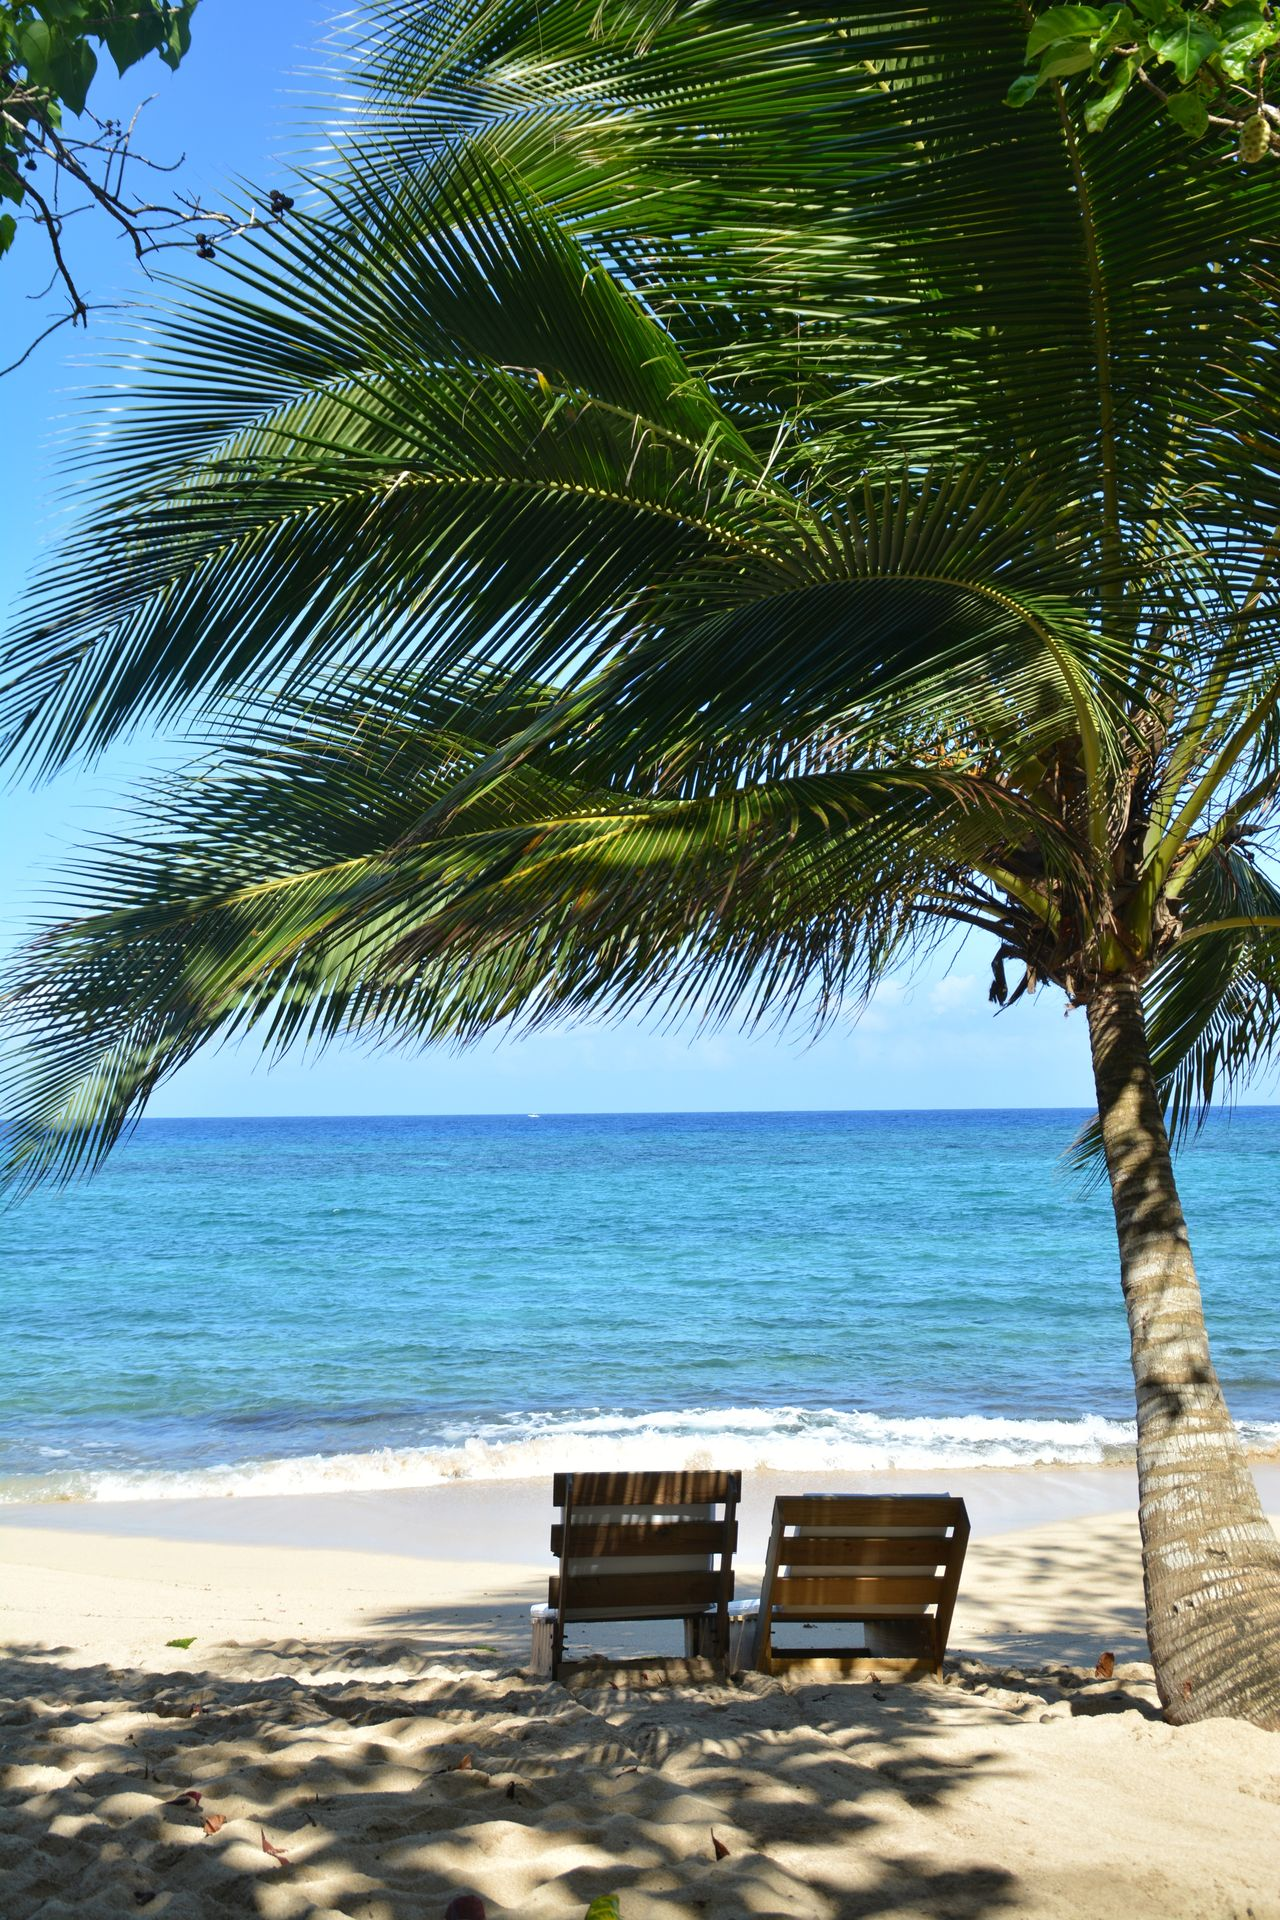 Sea Beach Tree Water Nature Tranquility Beauty In Nature Blue No People Sky Outdoors Sand Tranquil Scene Scenics Clear Sky Day Horizon Over Water Vacations Palm Tree